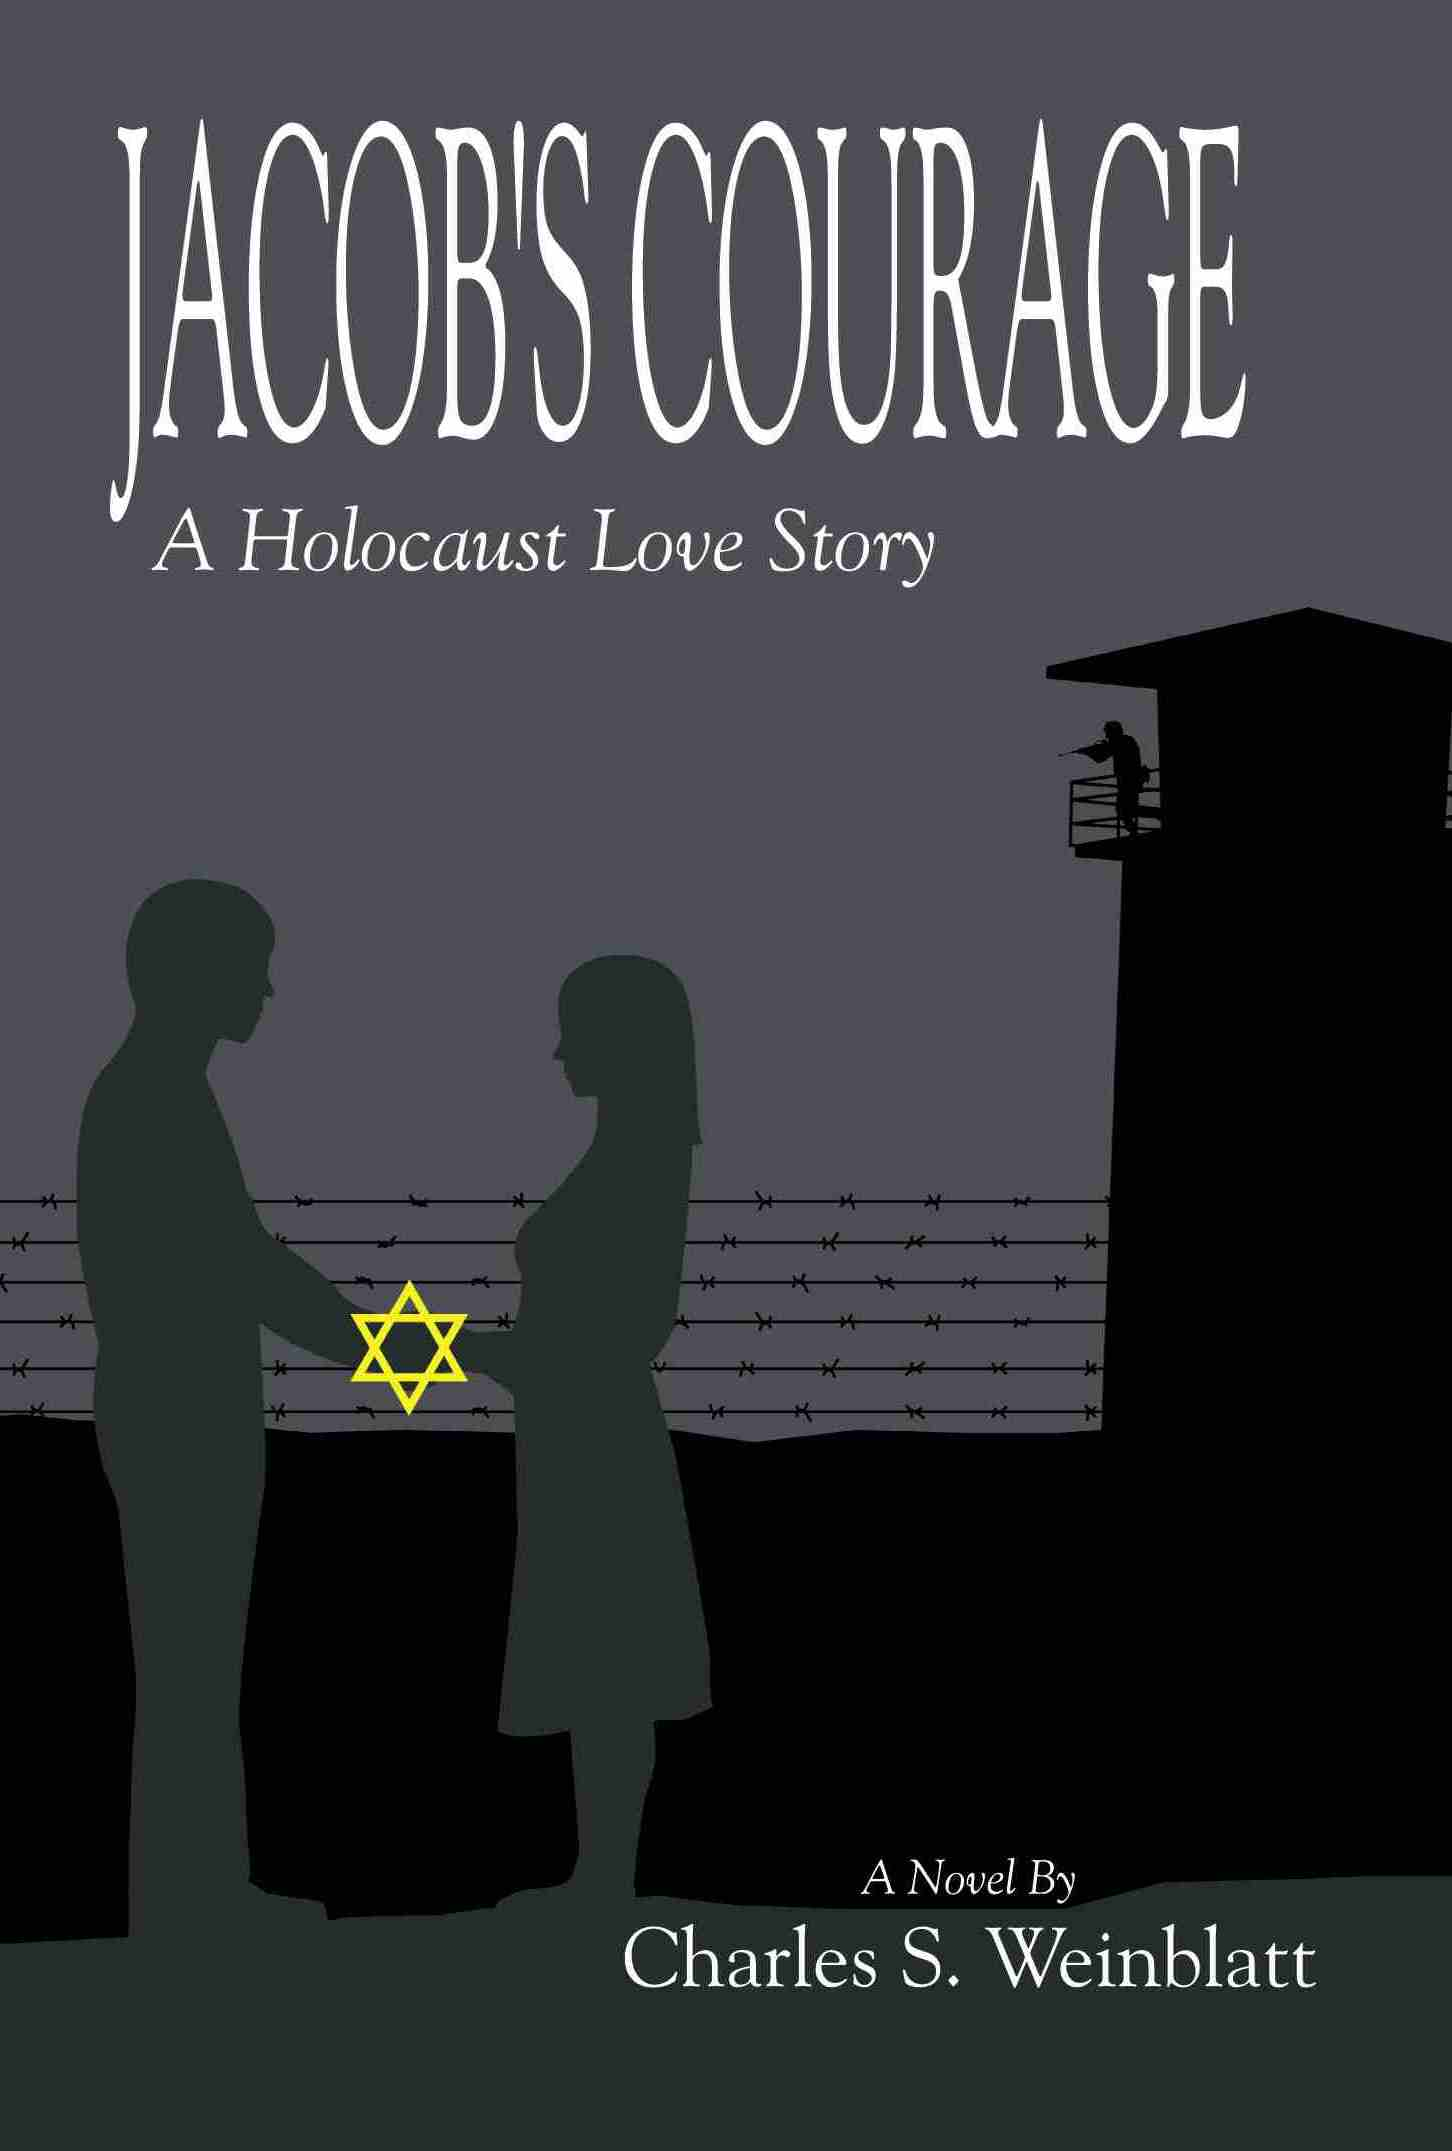 BookBuzzr Interviews Charles Weinblatt – Author of 'Jacob's Courage: A Holocaust Love Story'